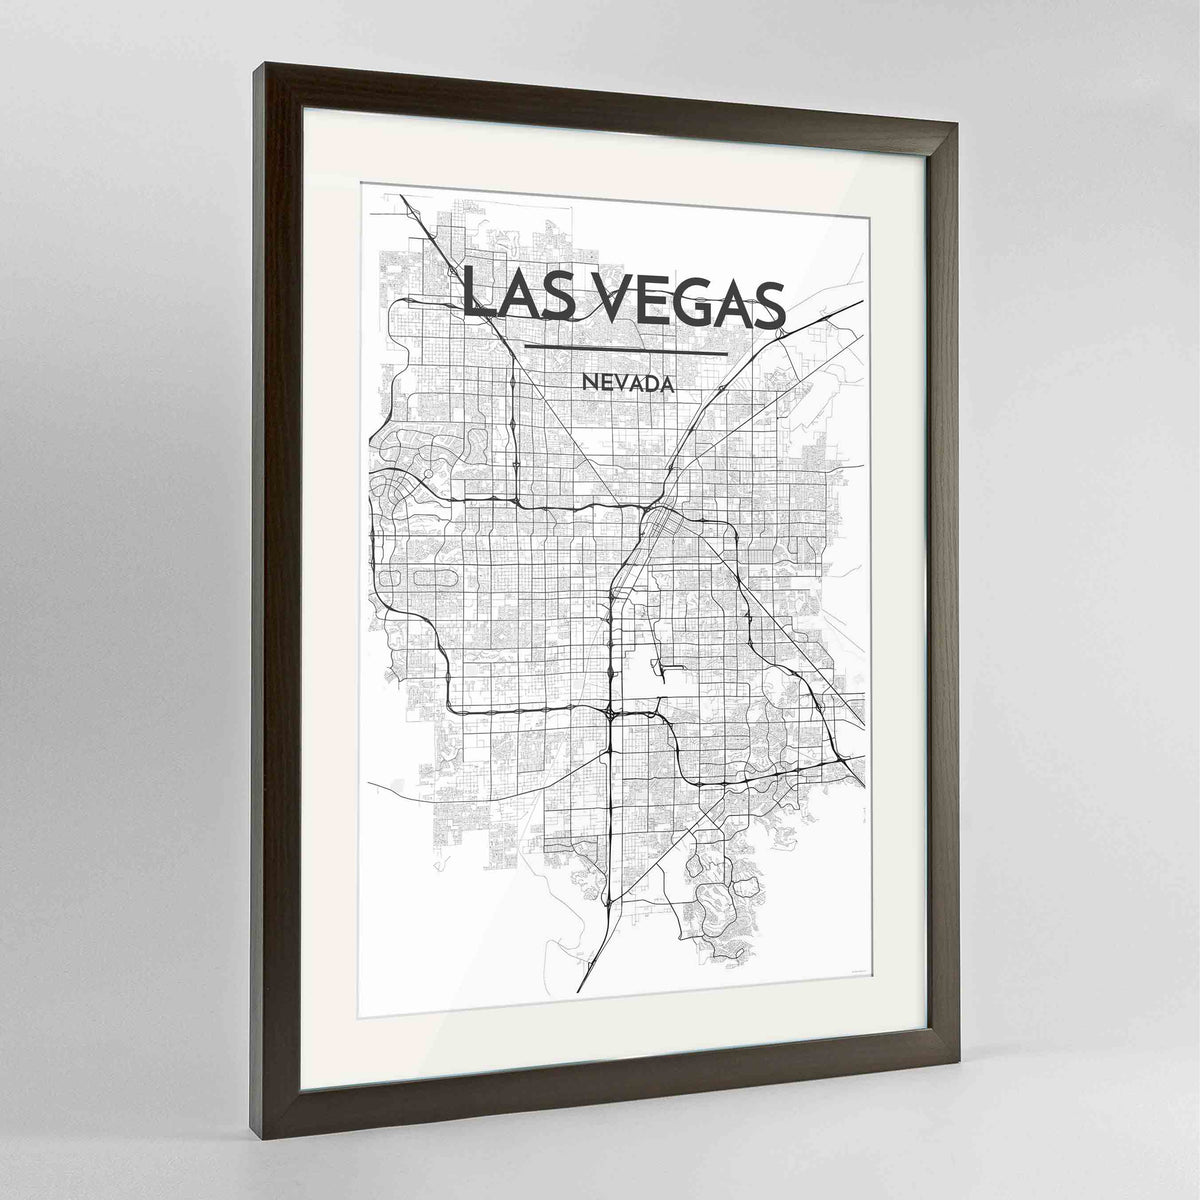 "Framed Las Vegas Map Art Print 24x36"" Contemporary Walnut frame Point Two Design Group"